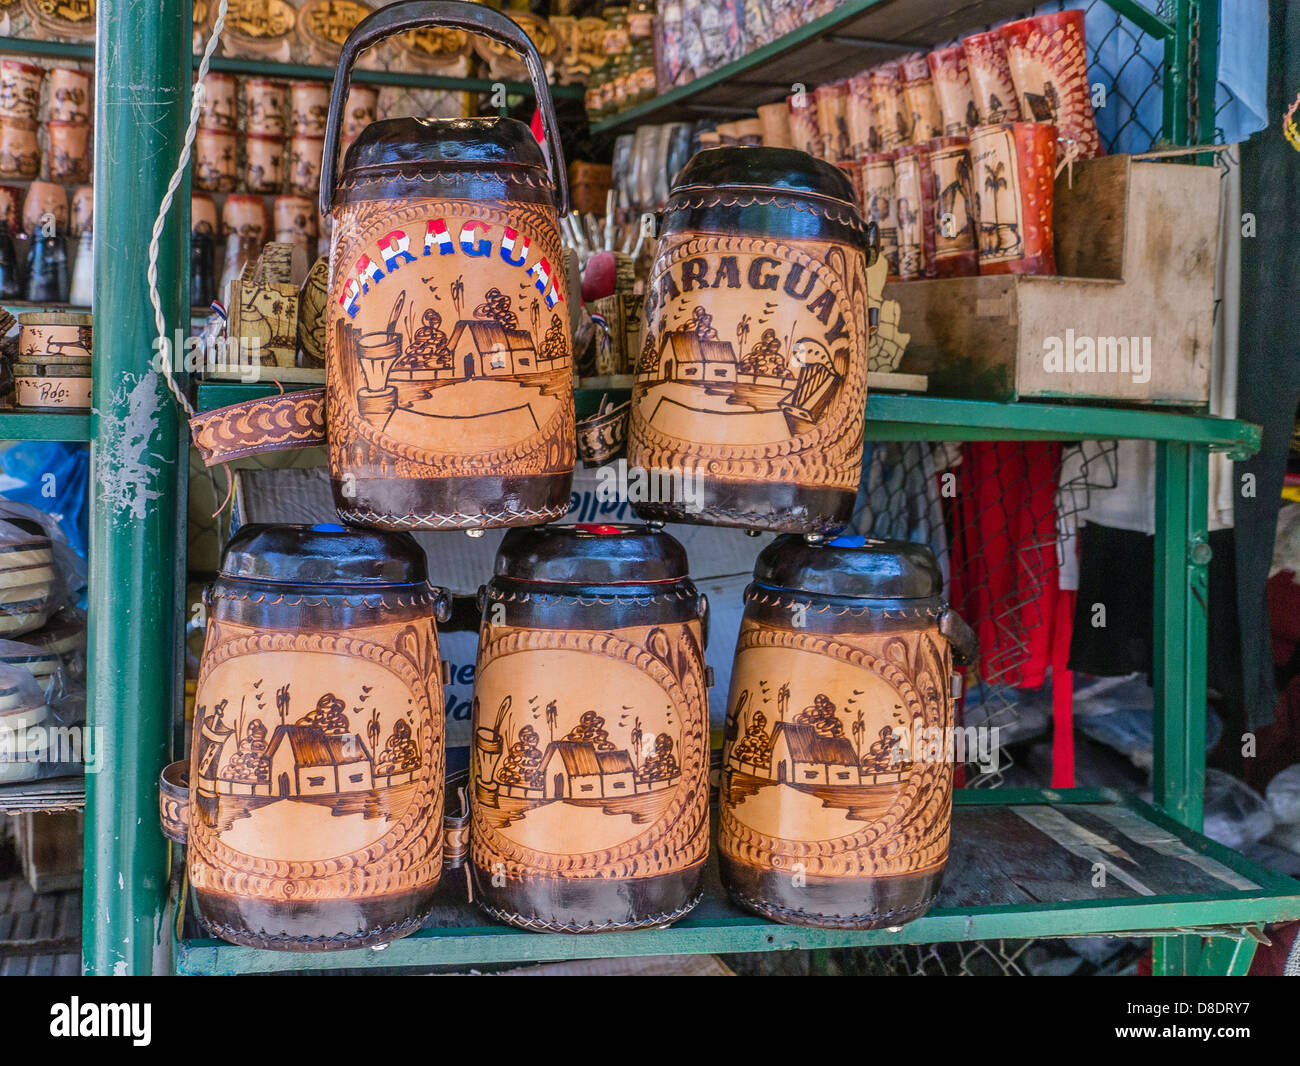 Tooled leather thermos bottles on display for sale at a vendor's stall in an open air market in Asunción. - Stock Image